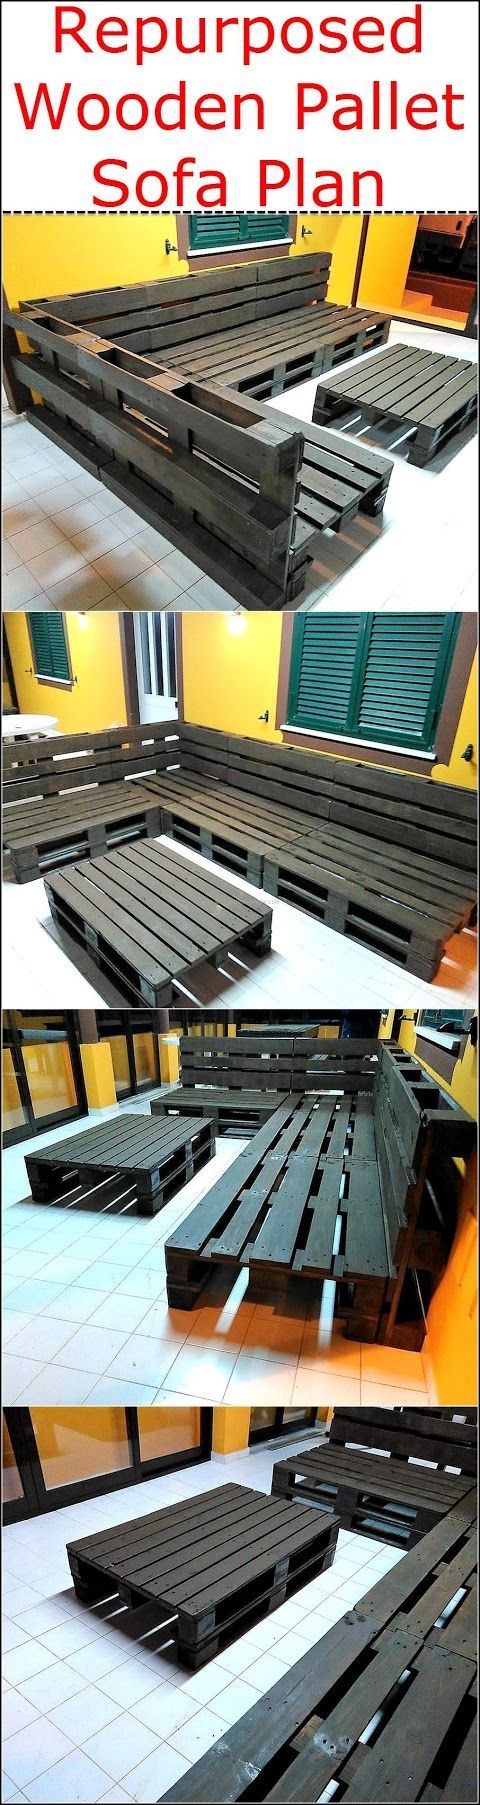 repurposed-wooden-pallet-sofa-plan